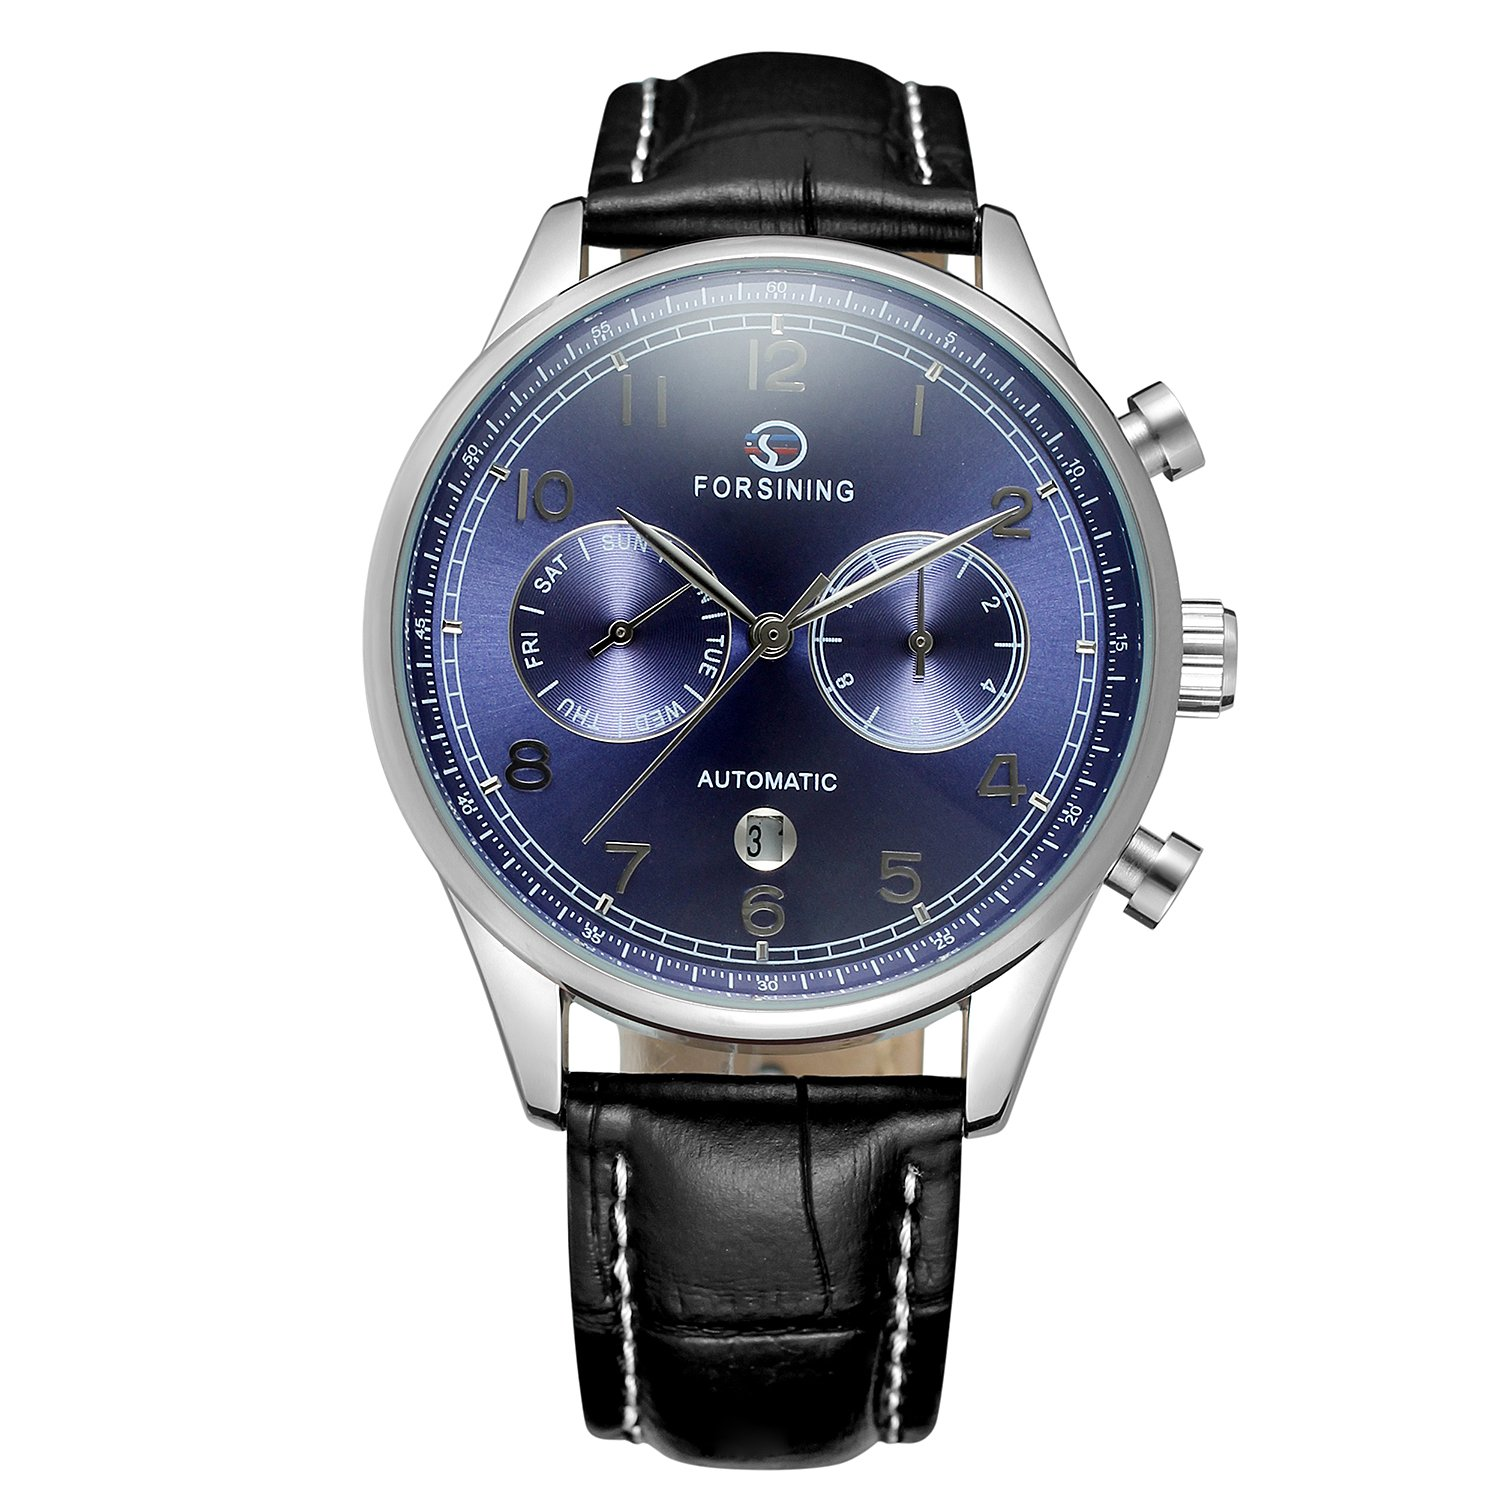 Amazon.com: FORSINING Mens Original Automatic Mechanical Calendar Watch with Leather Strap Military Clock Relojes: Watches